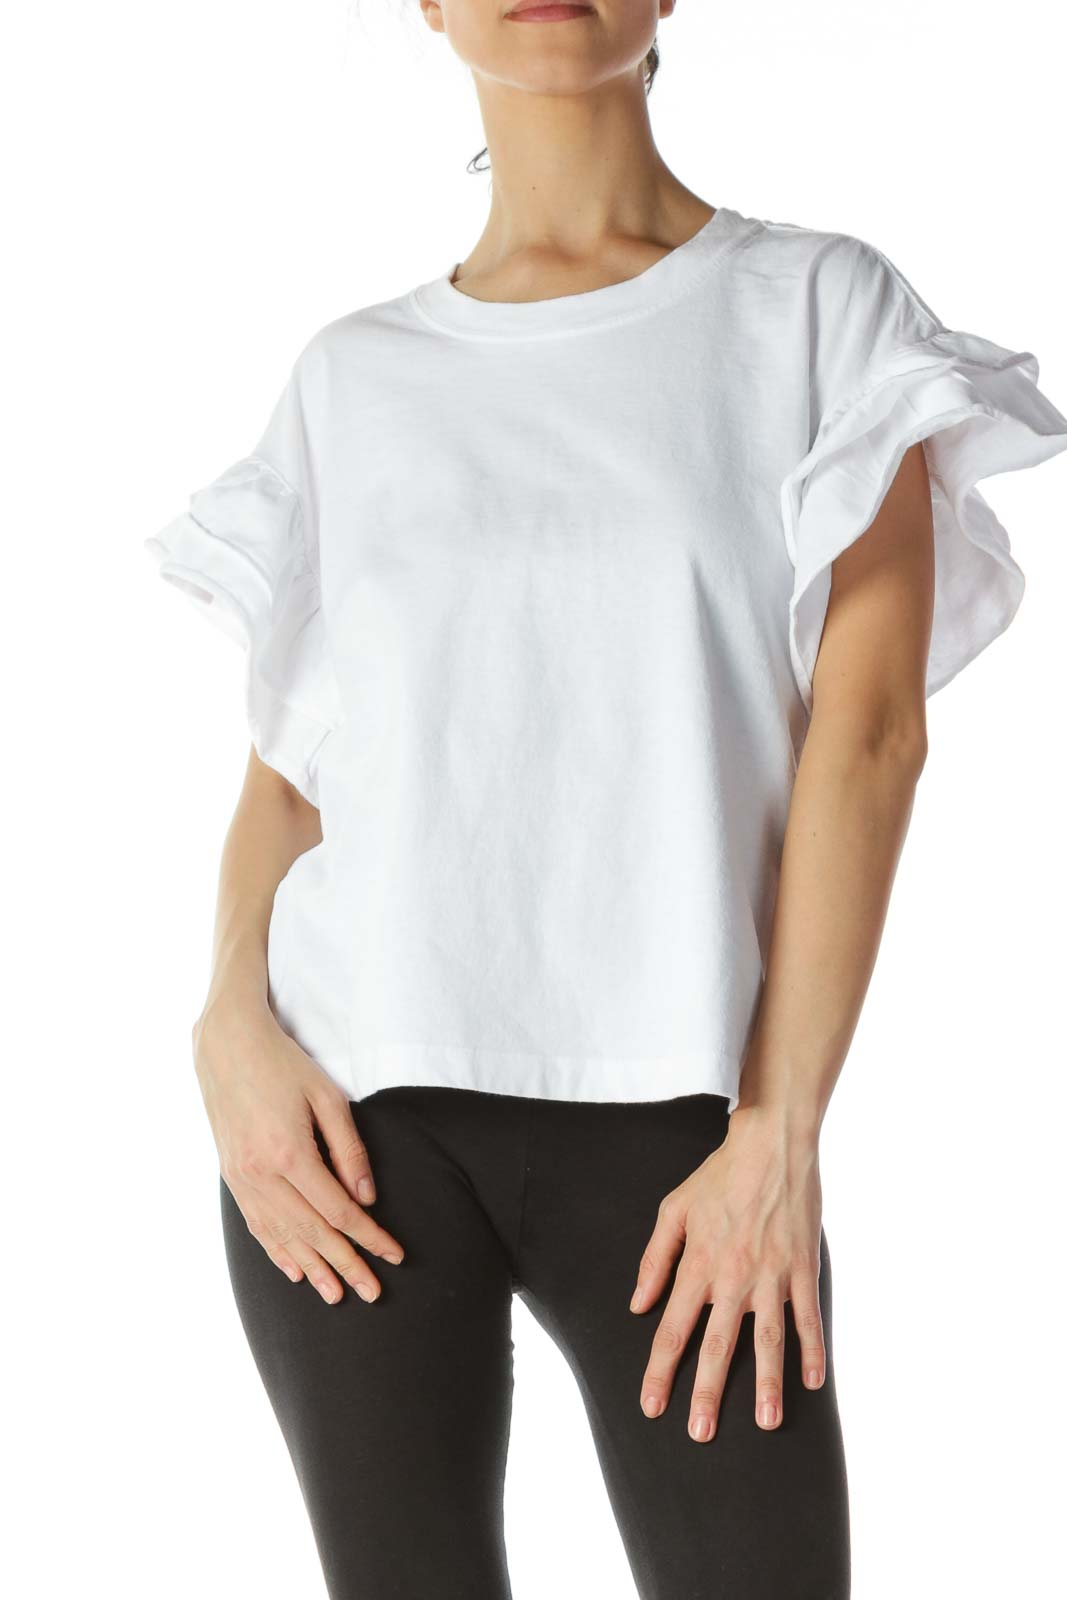 White 100% Cotton Short-Flared-Sleeves T-Shirt Front